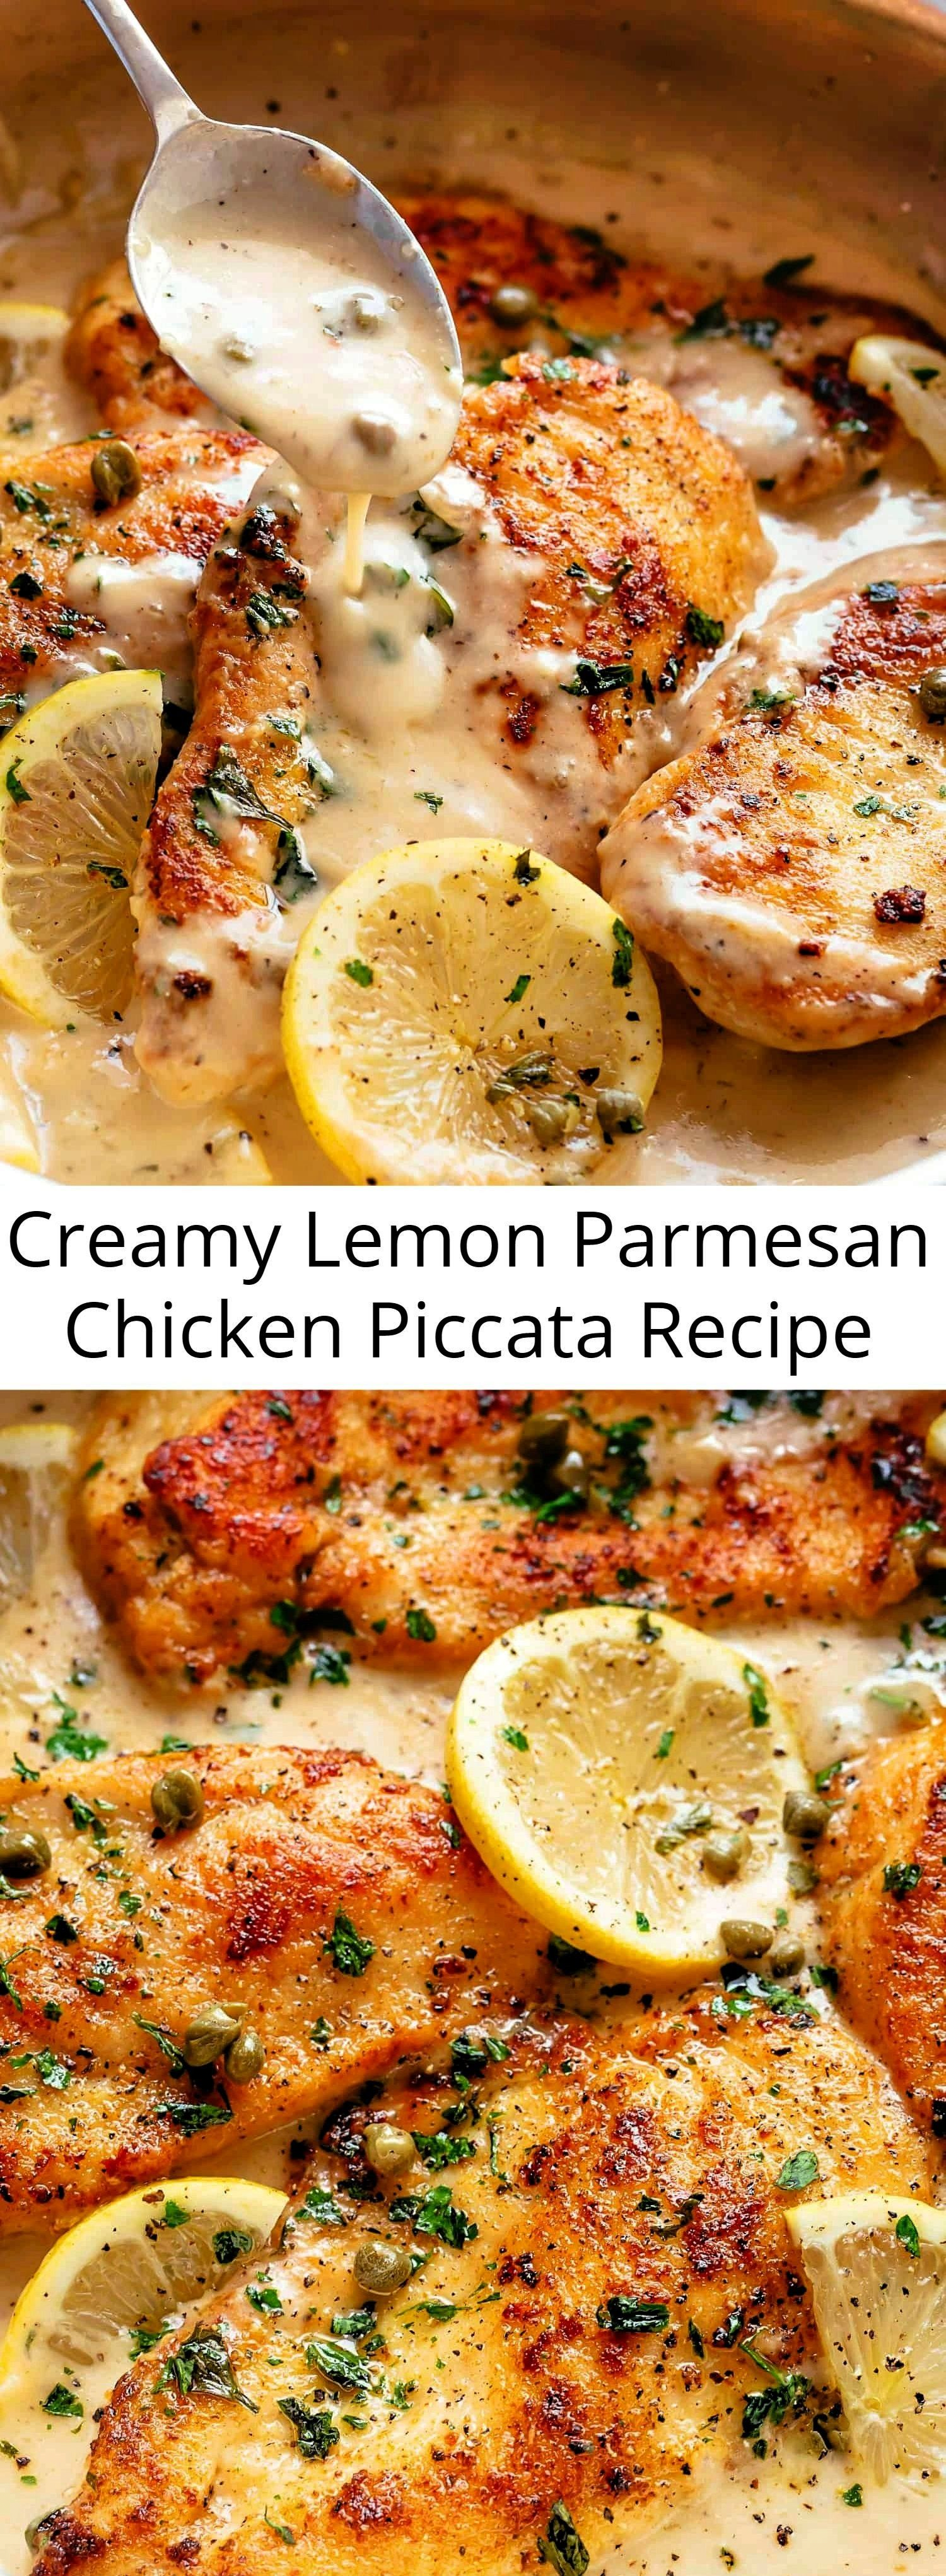 ultimate in gourmet comfort food with parmesan cheese, garlic and a creamy lemon sauce, this Creamy